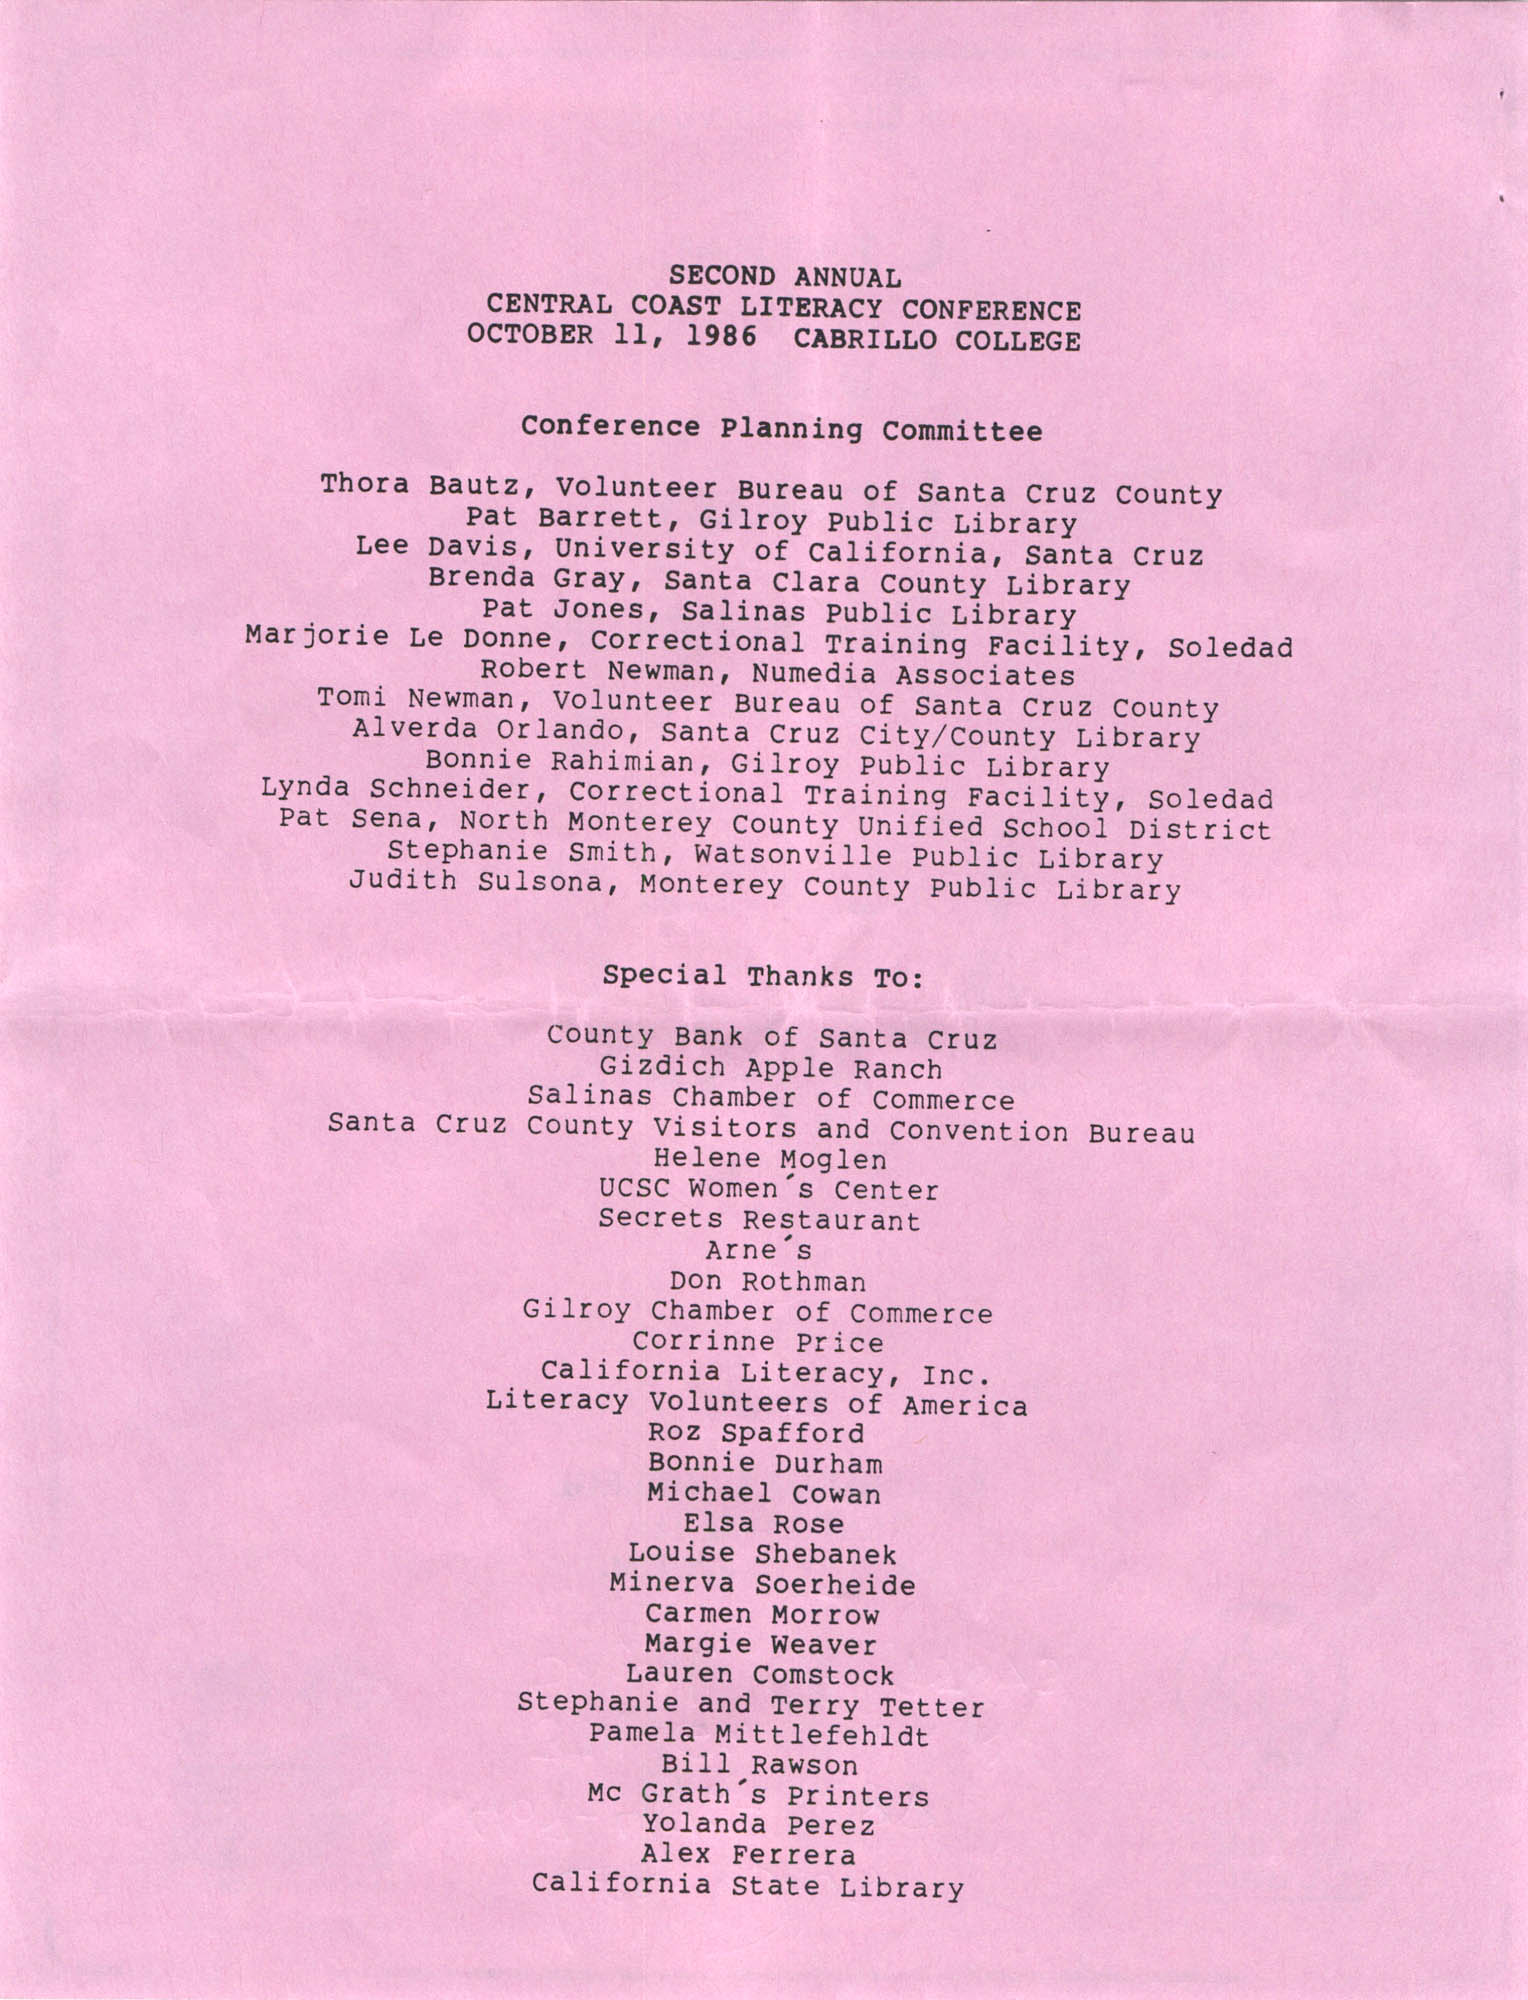 Second Annual Central Coast Literacy Conference Program and Schedule of Events, October 11, 1986, Page 2